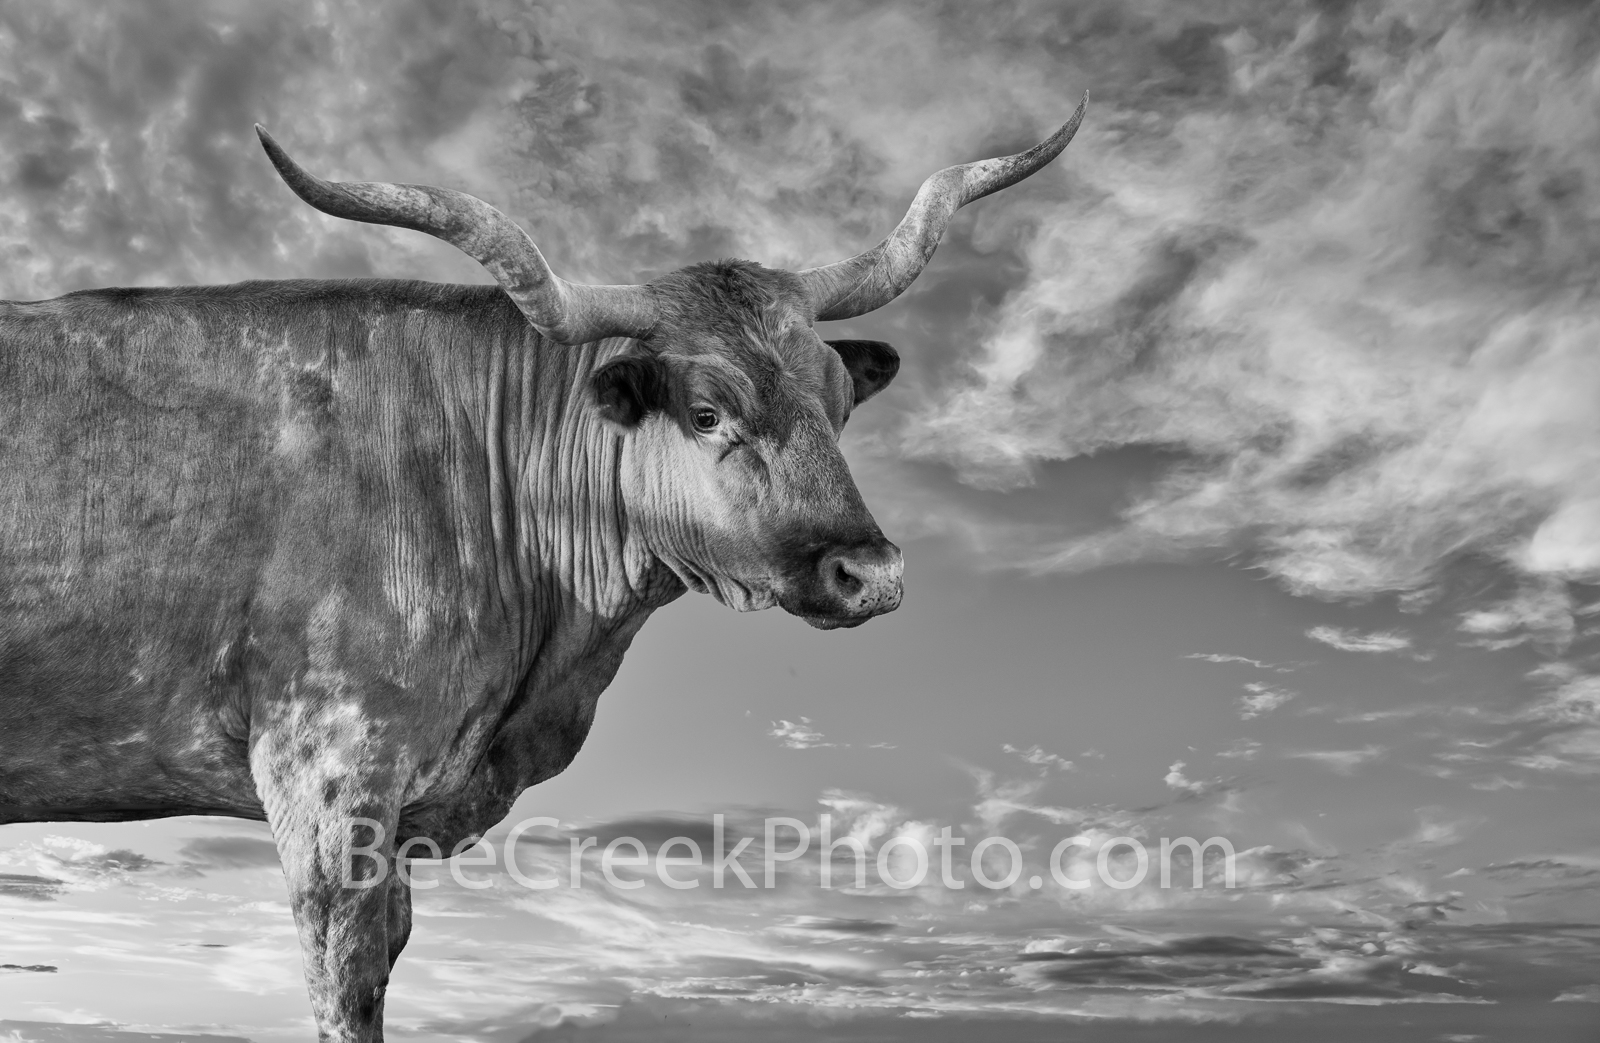 The Texas Longhorn BW - This longhorn was out in the Texas hill country on a elevated piece of the property so were able to capture...